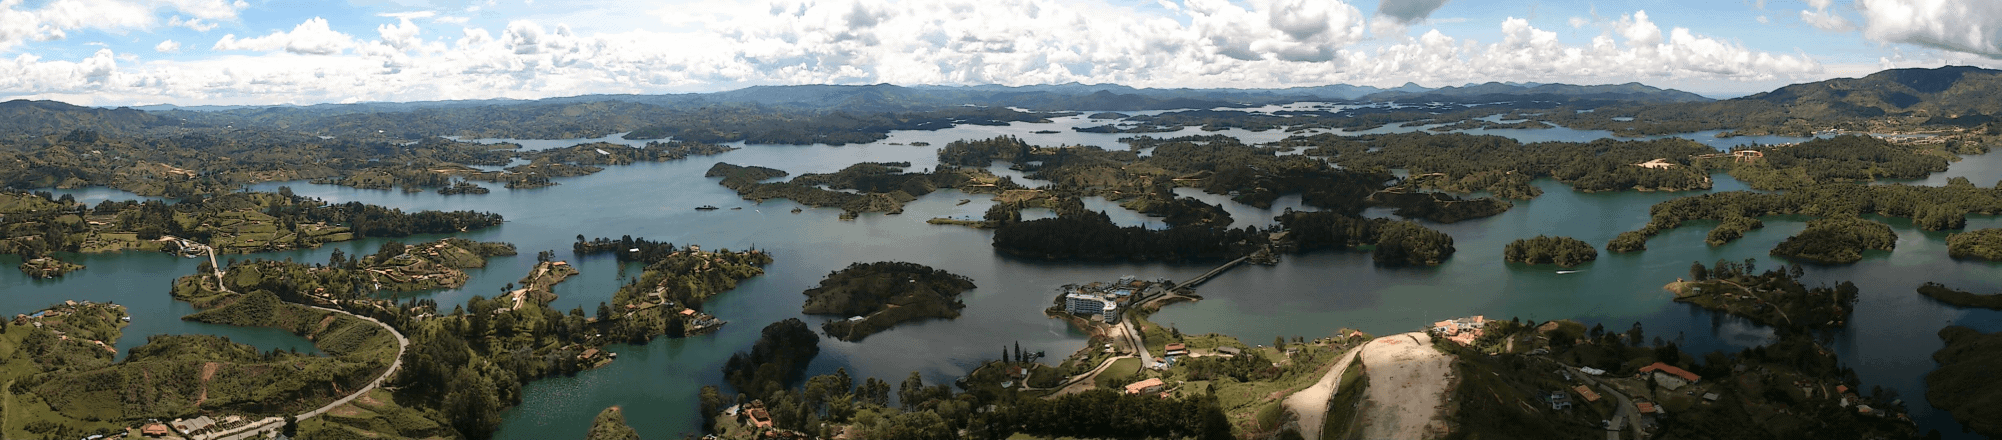 Guatape Colombia - Day Trips from Medellin - Only Once Today